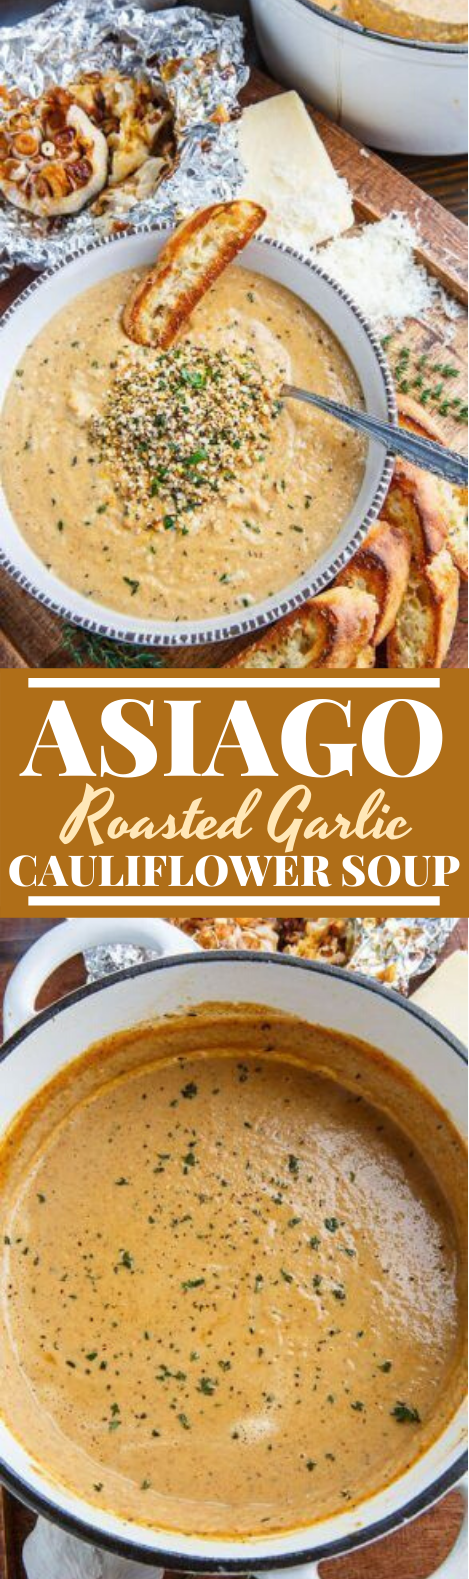 Asiago Roasted Garlic Cauliflower Soup #vegetarian #dinner #soup #meatless #cauliflower